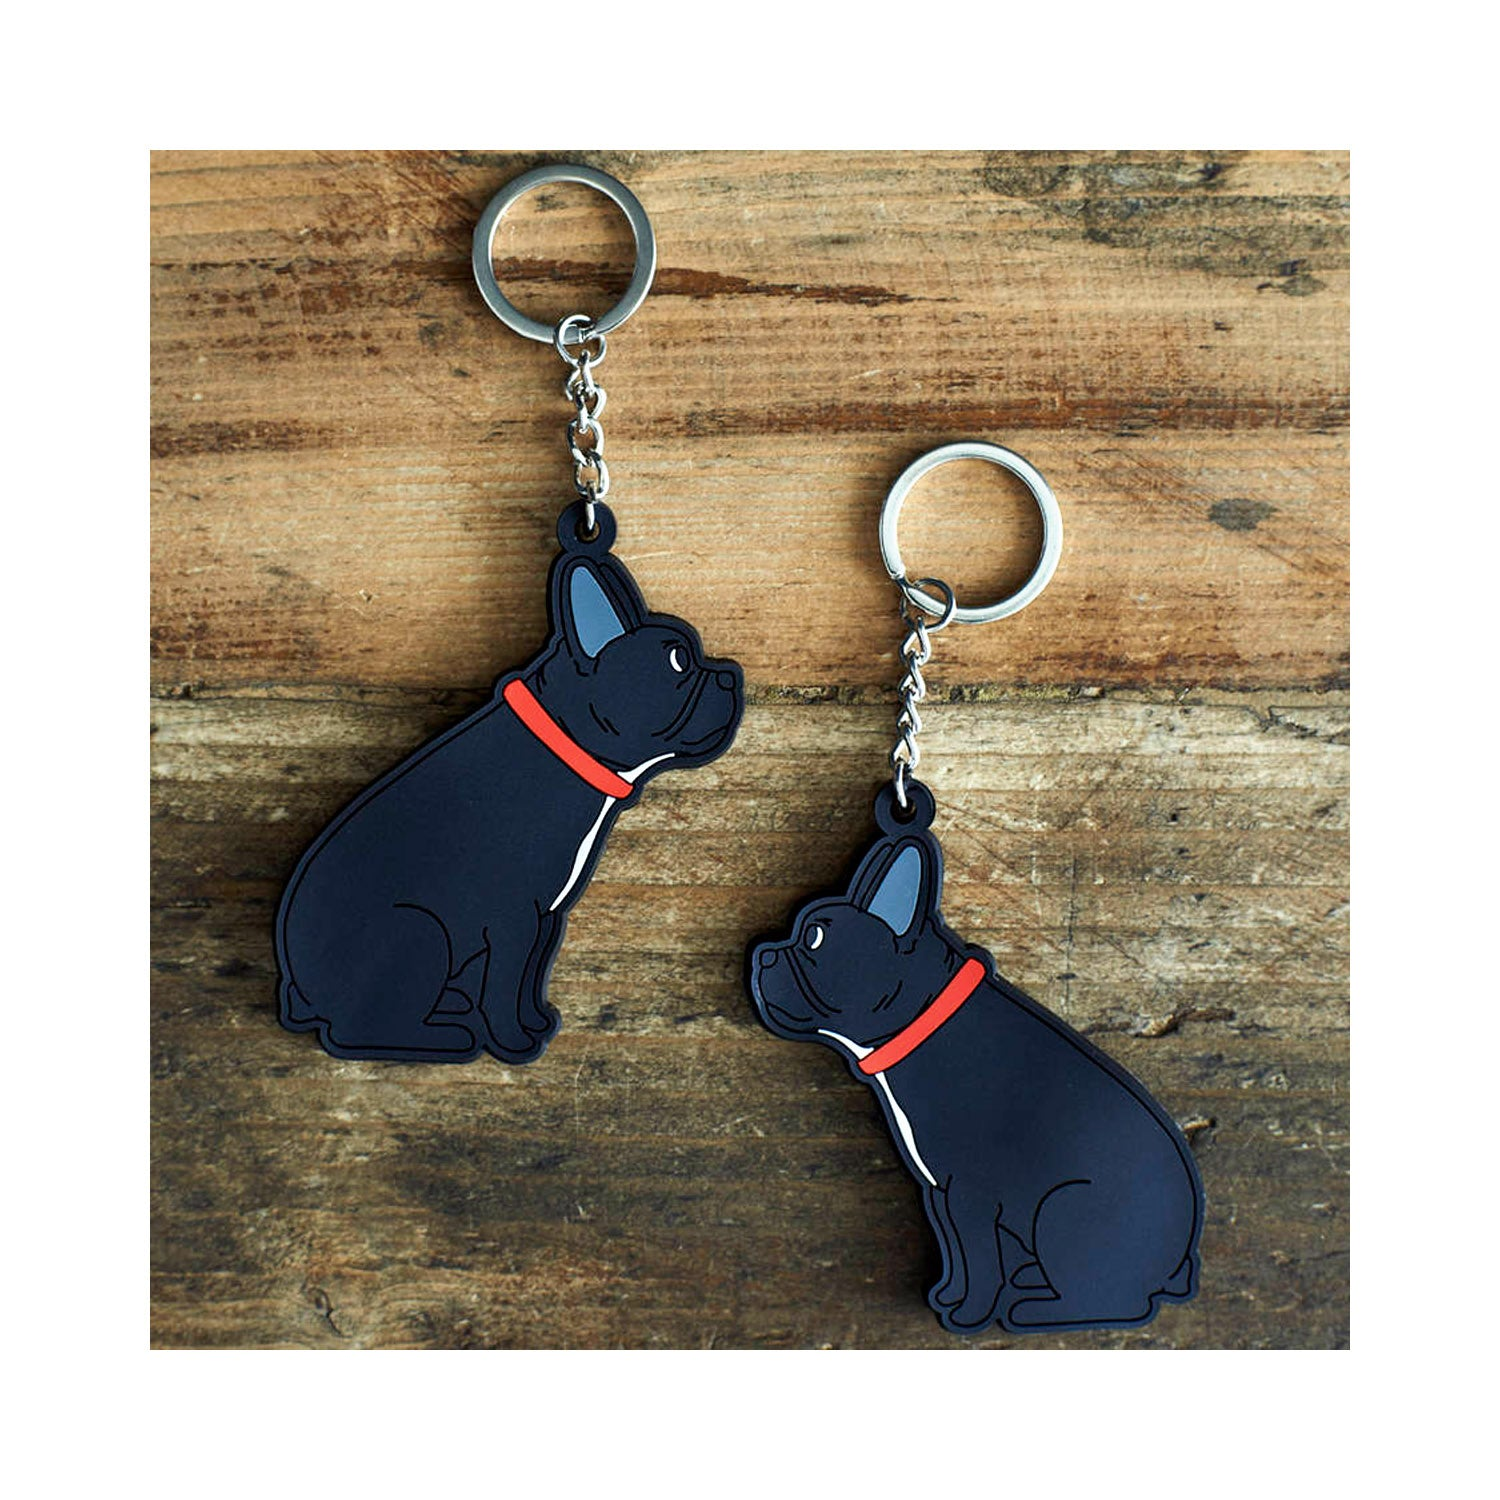 Dog Lover Gifts available at Dog Krazy Gifts - Freddie the French Bulldog Keyring - part of the Sweet William range available from Dog Krazy Gifts